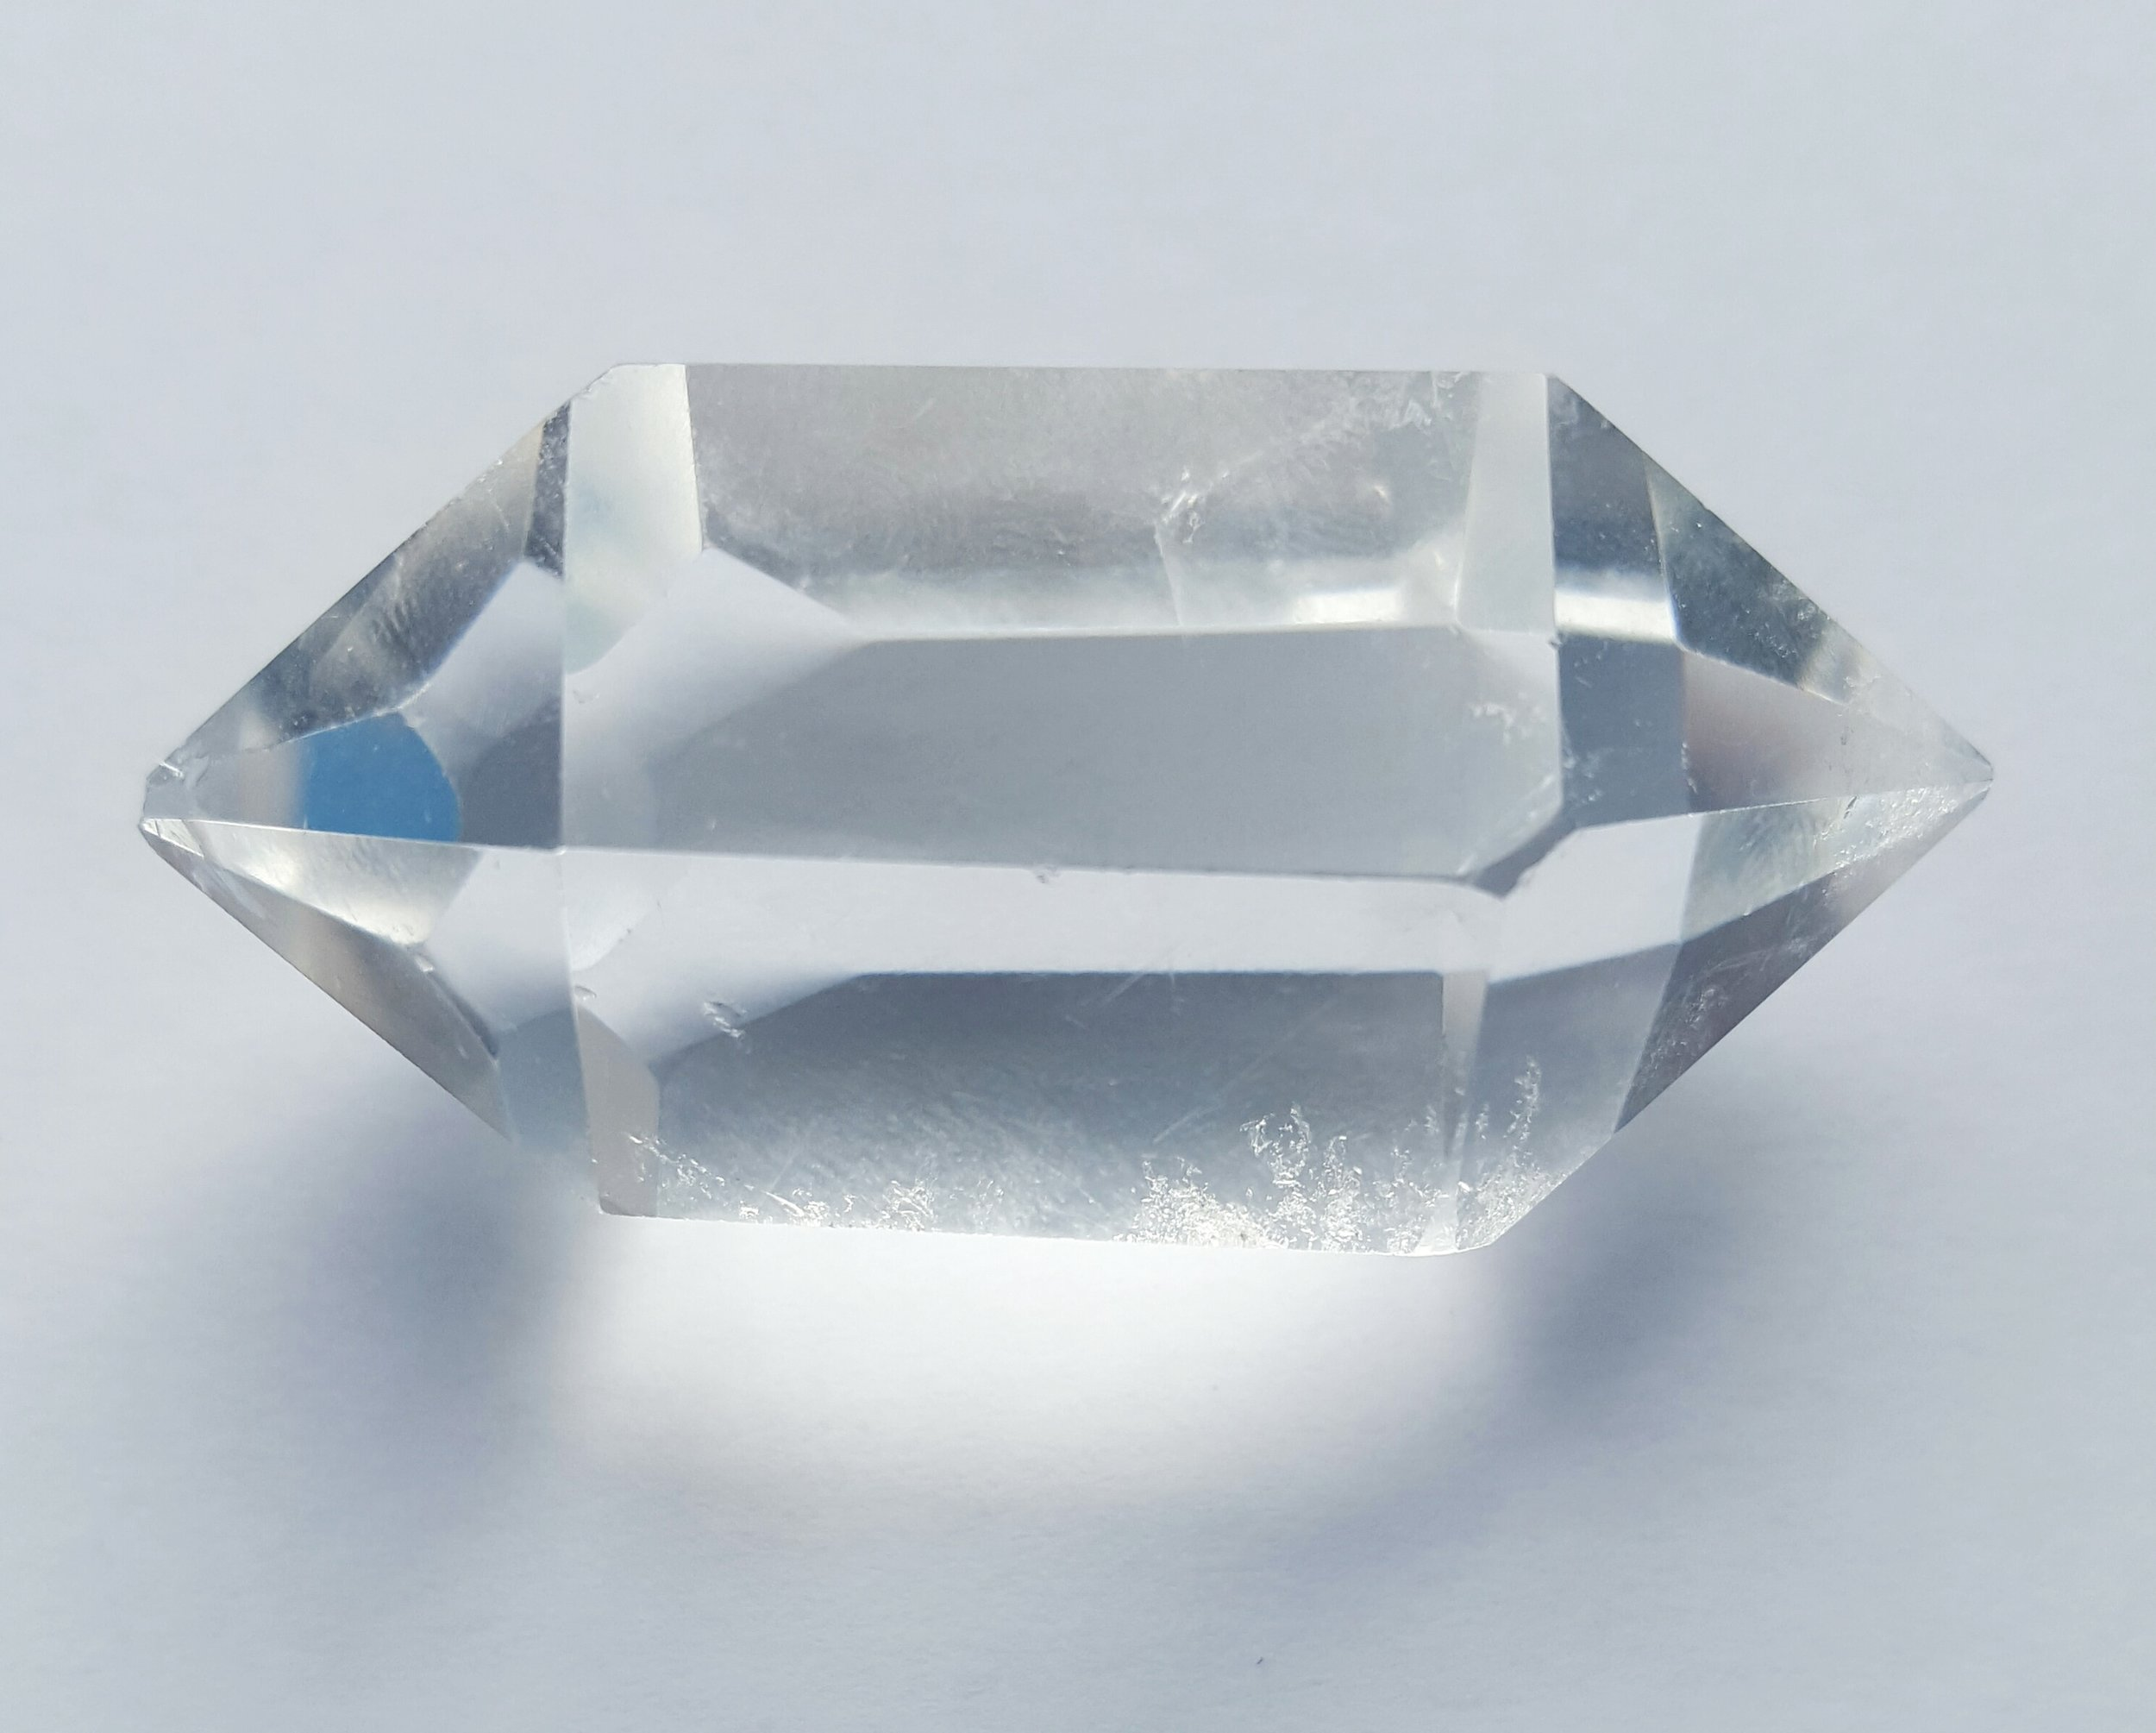 Copy of Quartz point double terminated crystal healing ascension